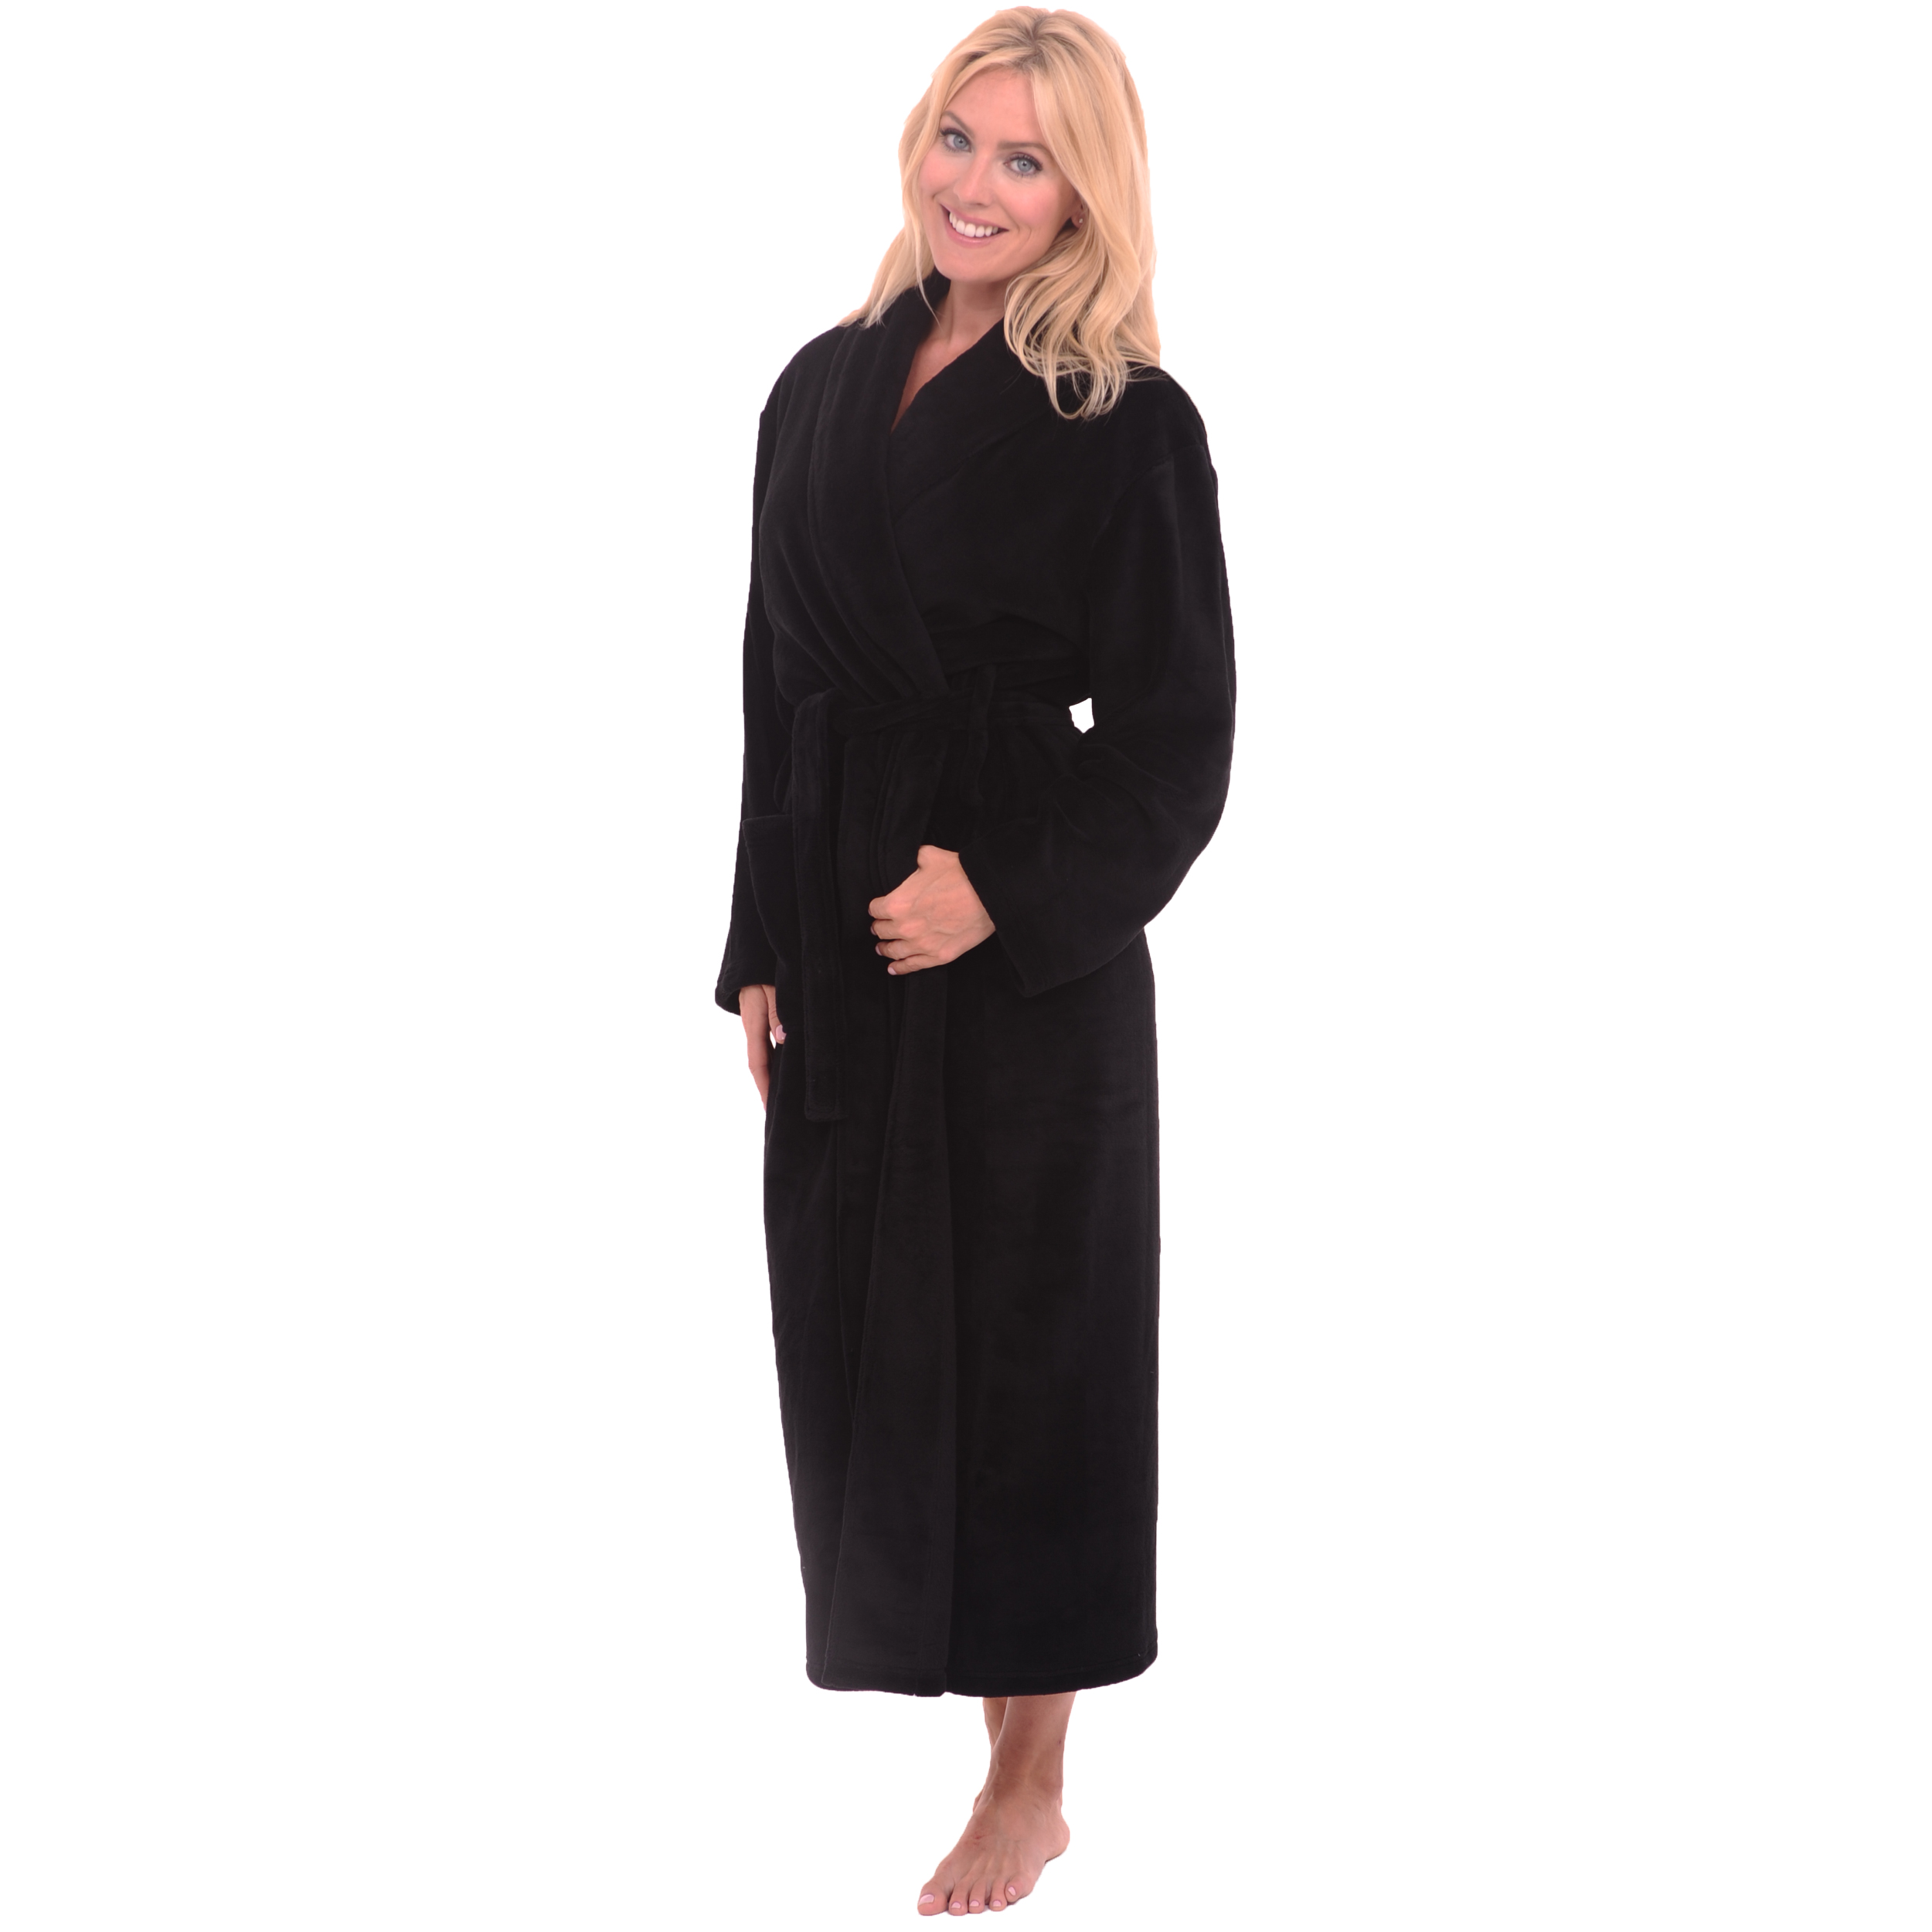 womens fleece bathrobes | microfiber robes | del rossa